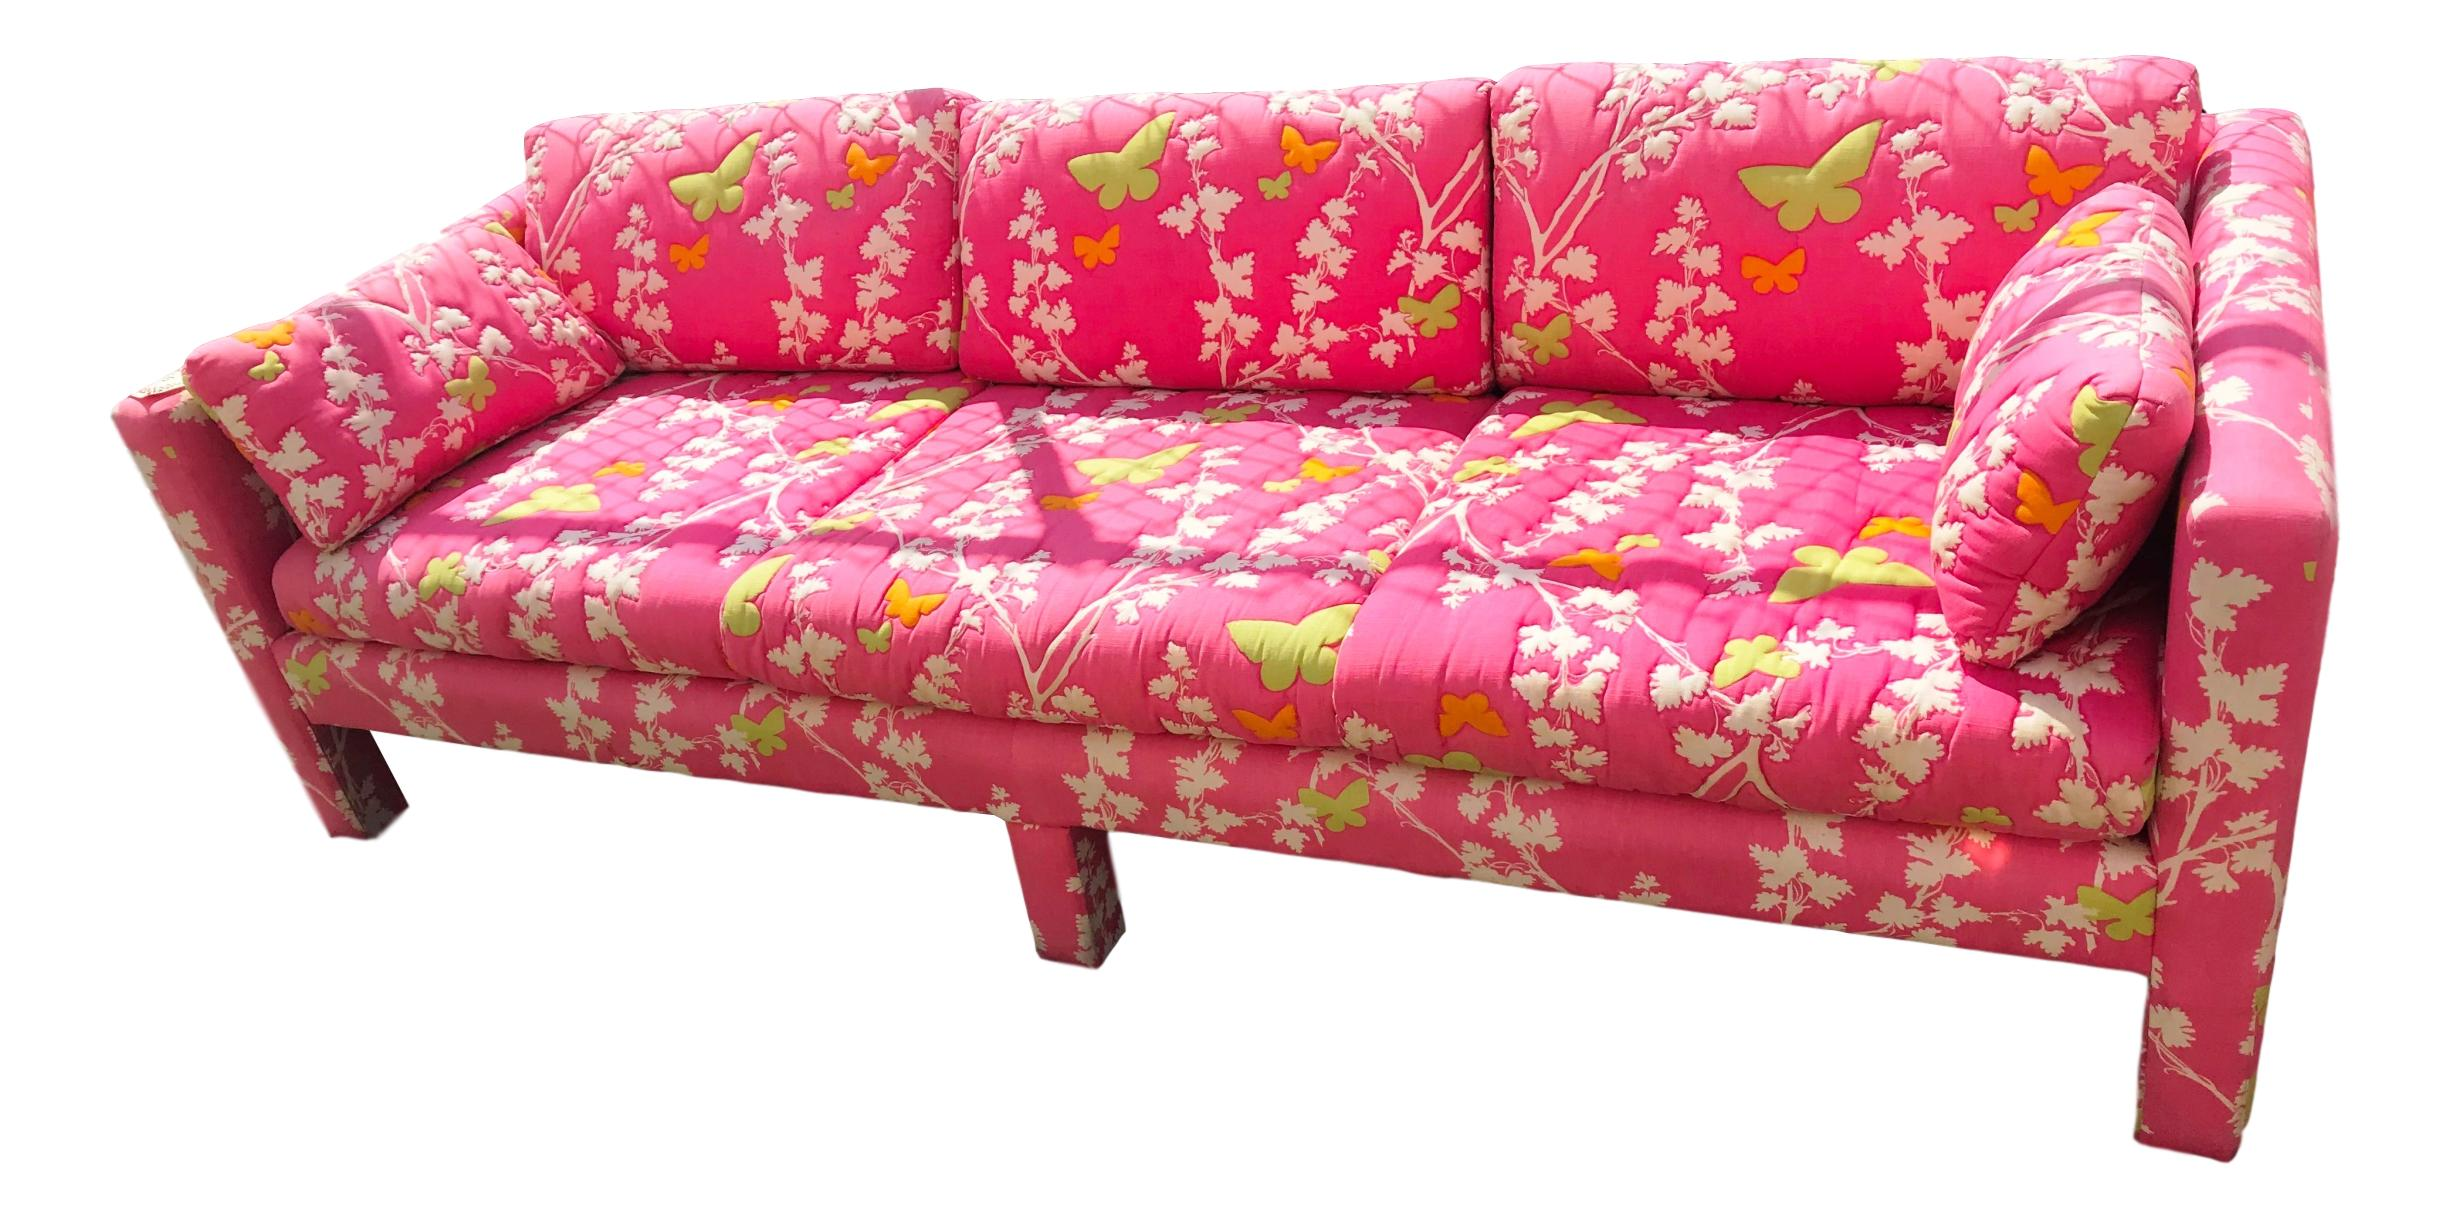 Chinoiserie Lilly Pulitzer Parsons Style Pink Tuxedo Sofa